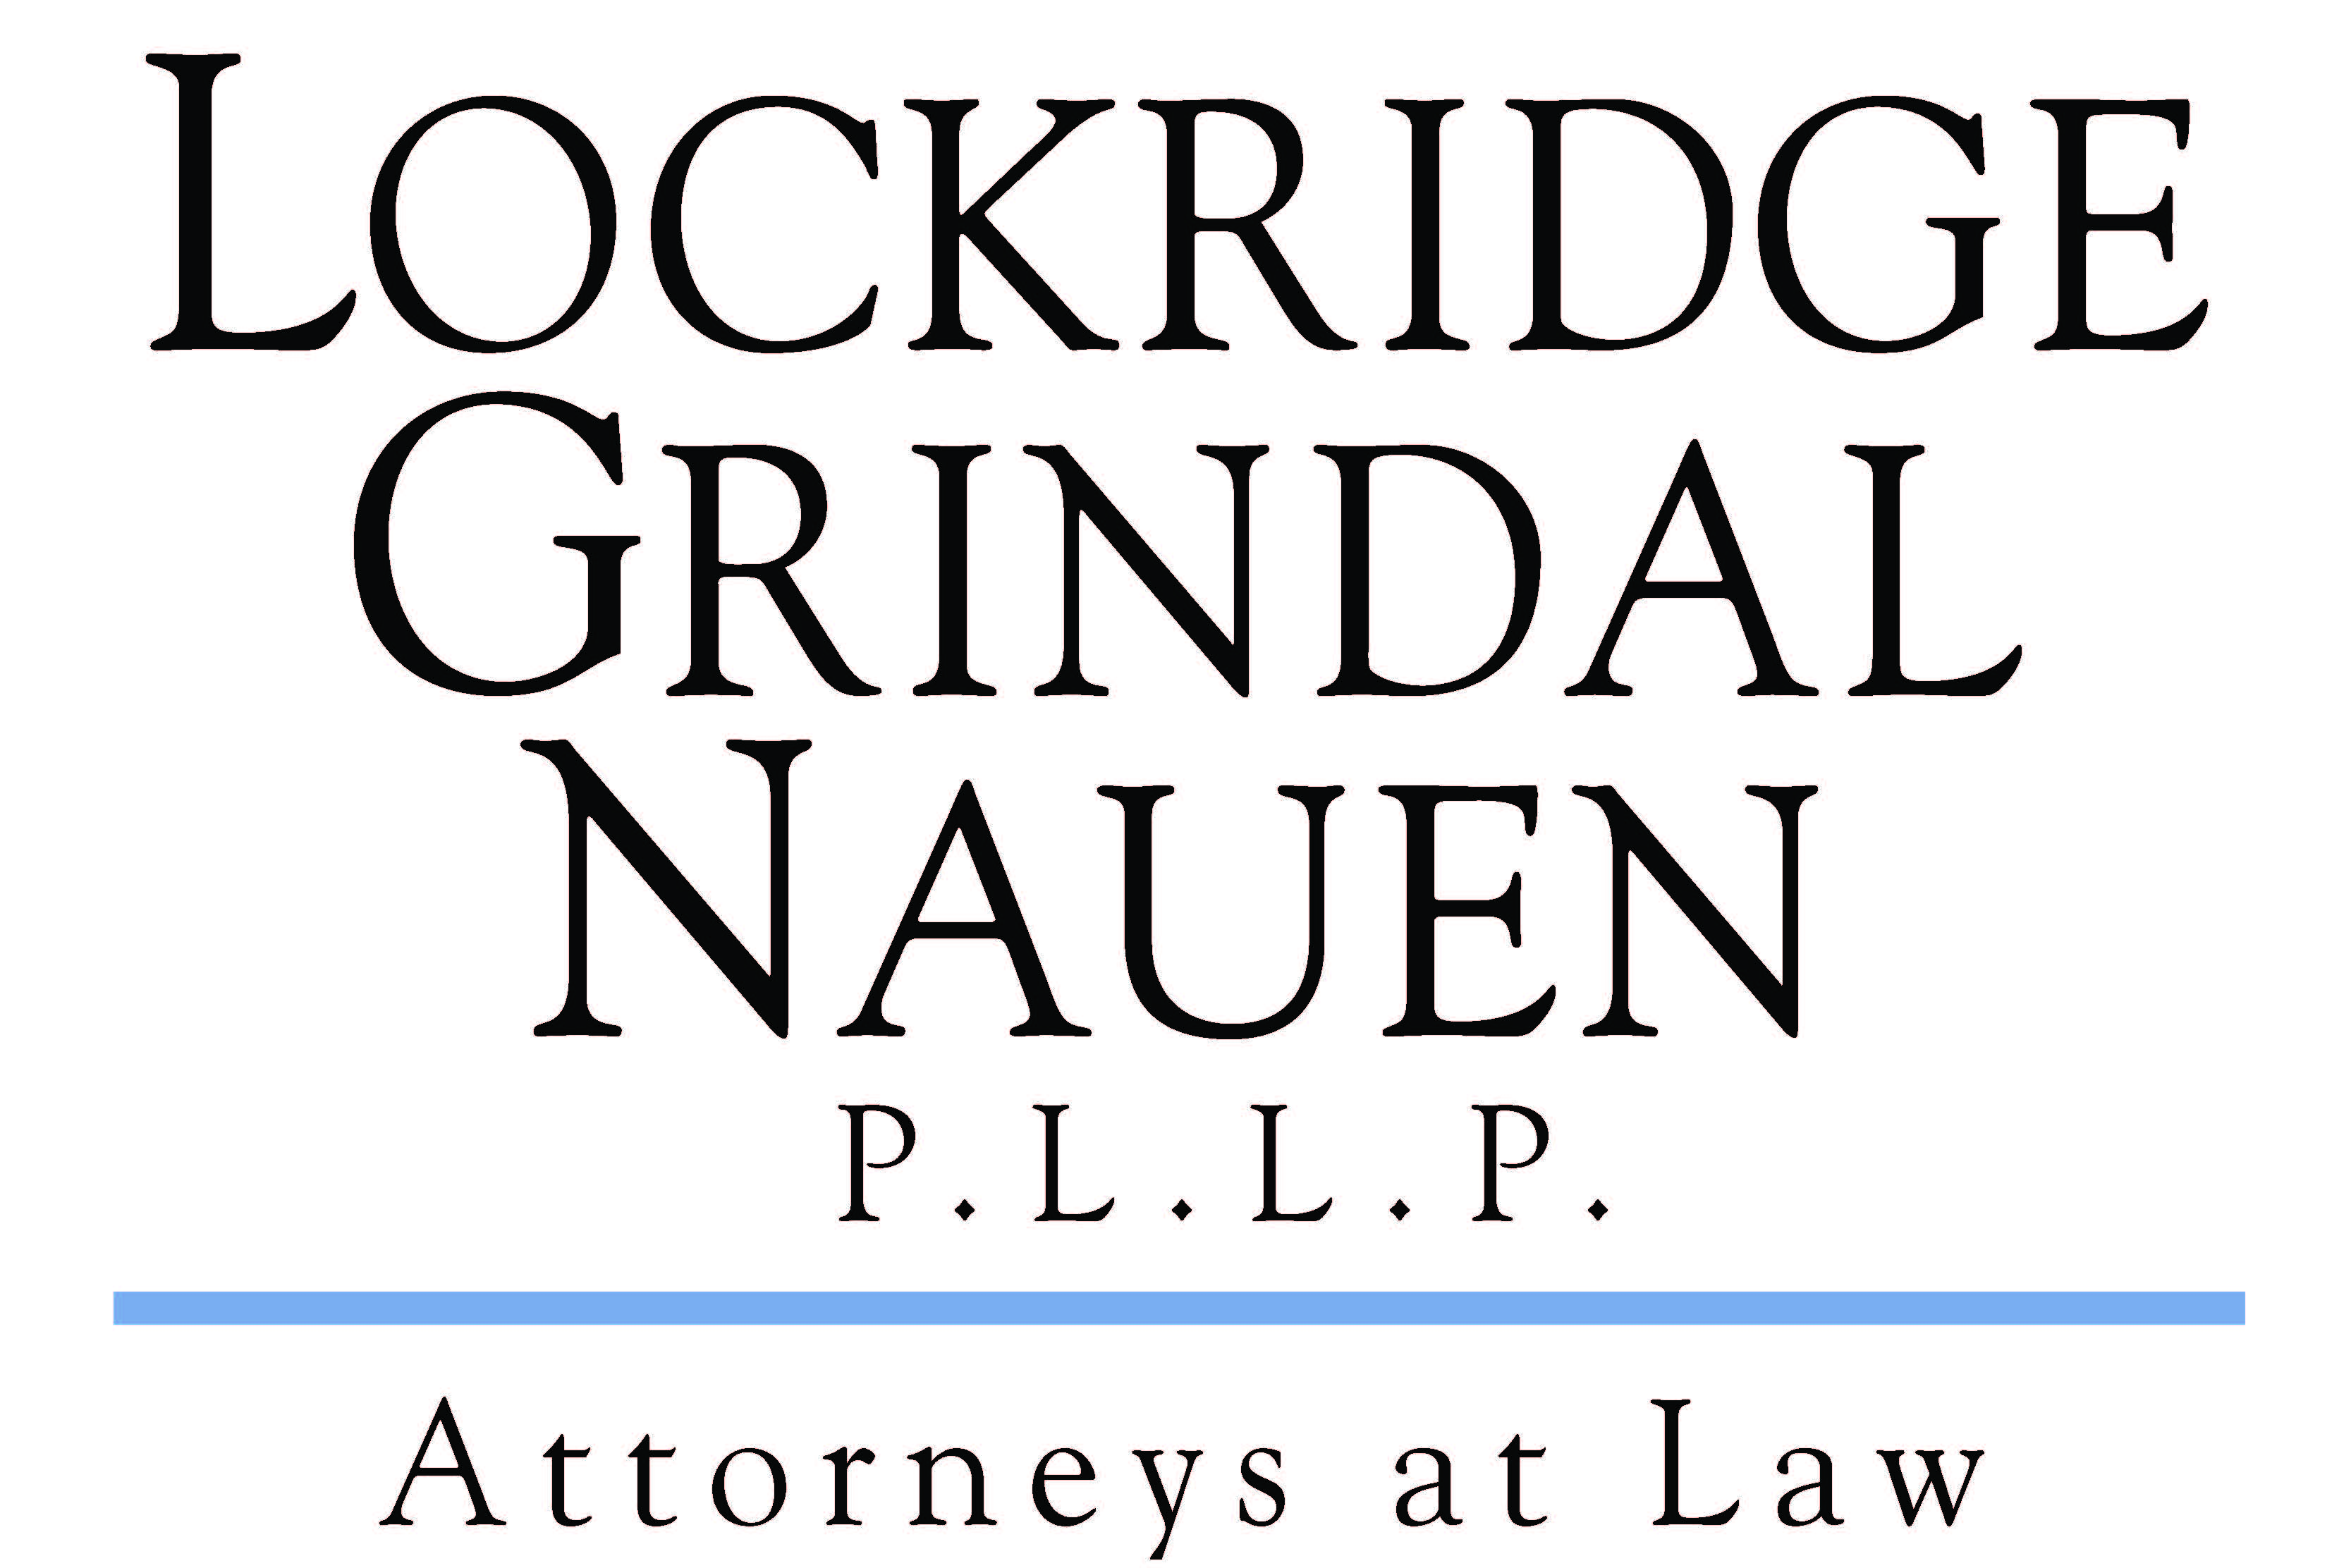 Logo for Lockridge Grindal Nauen PLLP